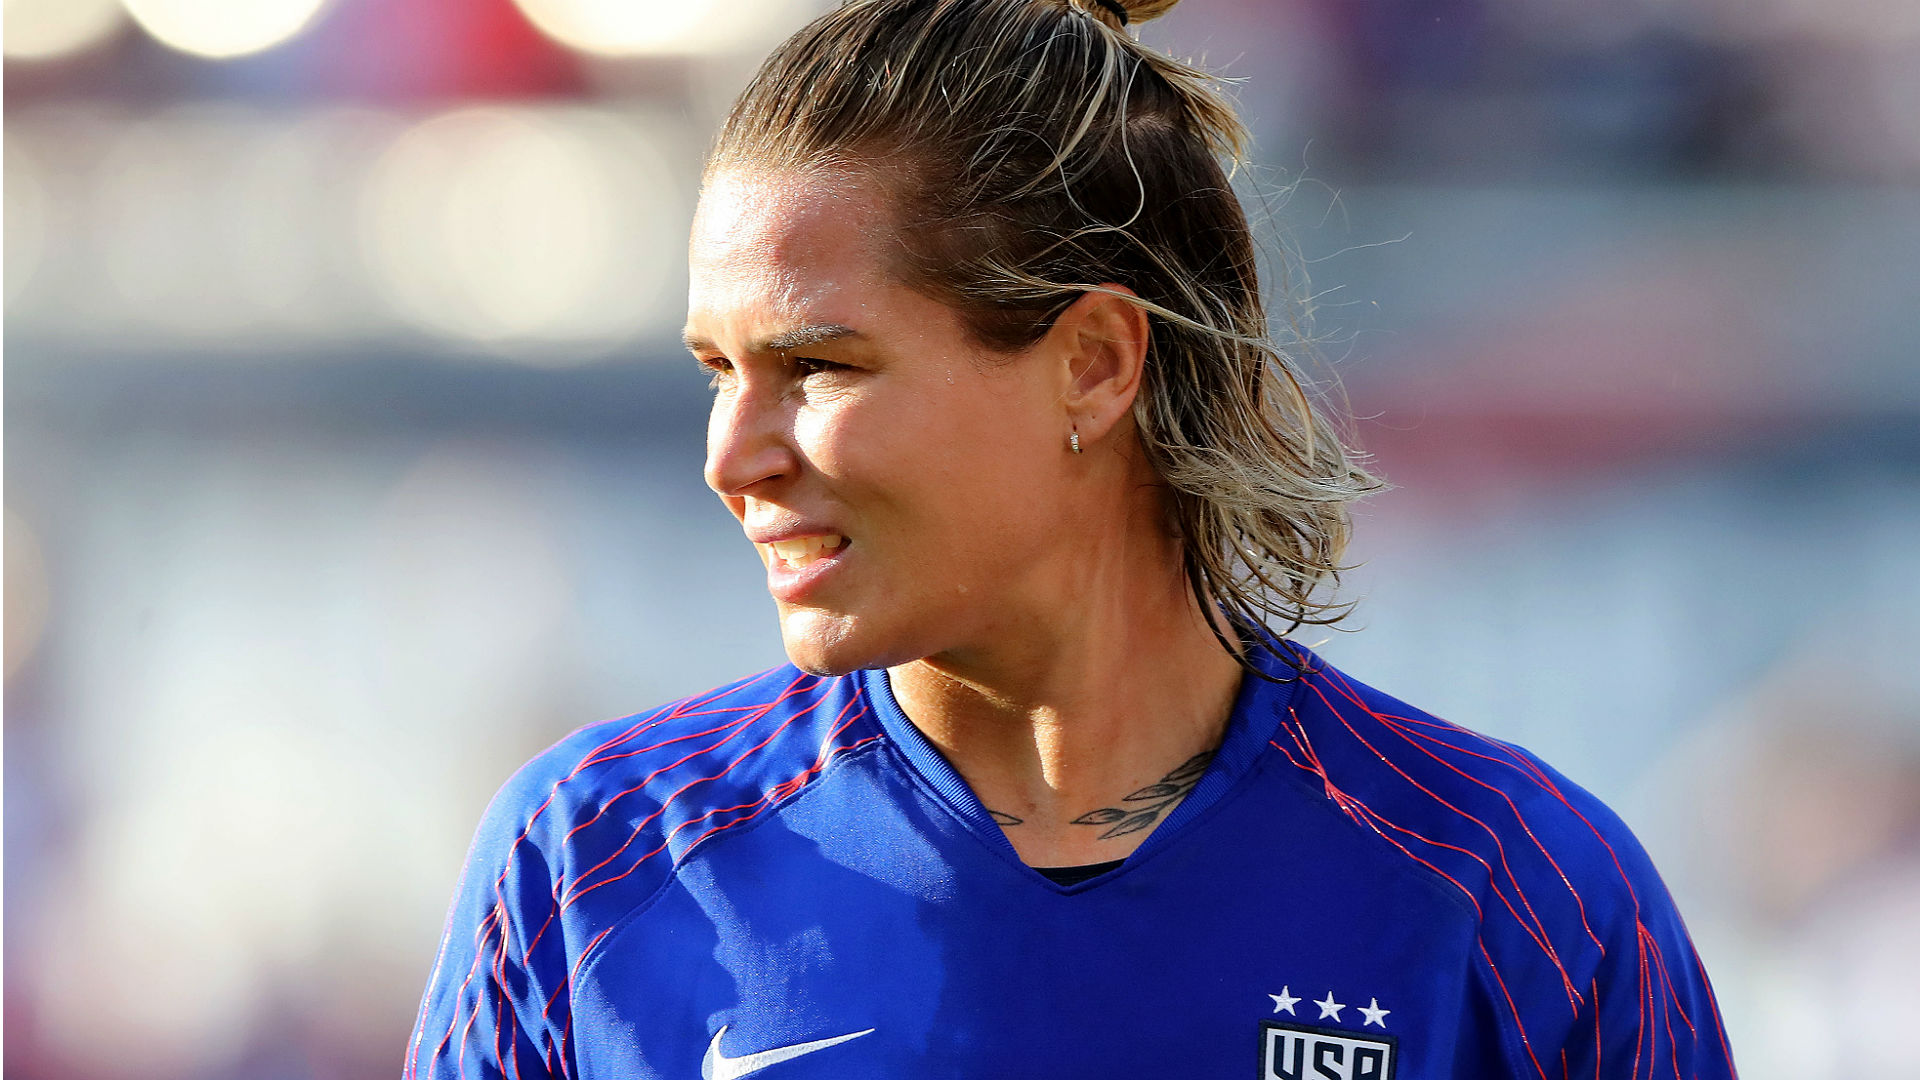 Ashlyn Harris defends USWNT against Jaelene Hinkle's anti-Christian claim: 'Your religion was never the problem'